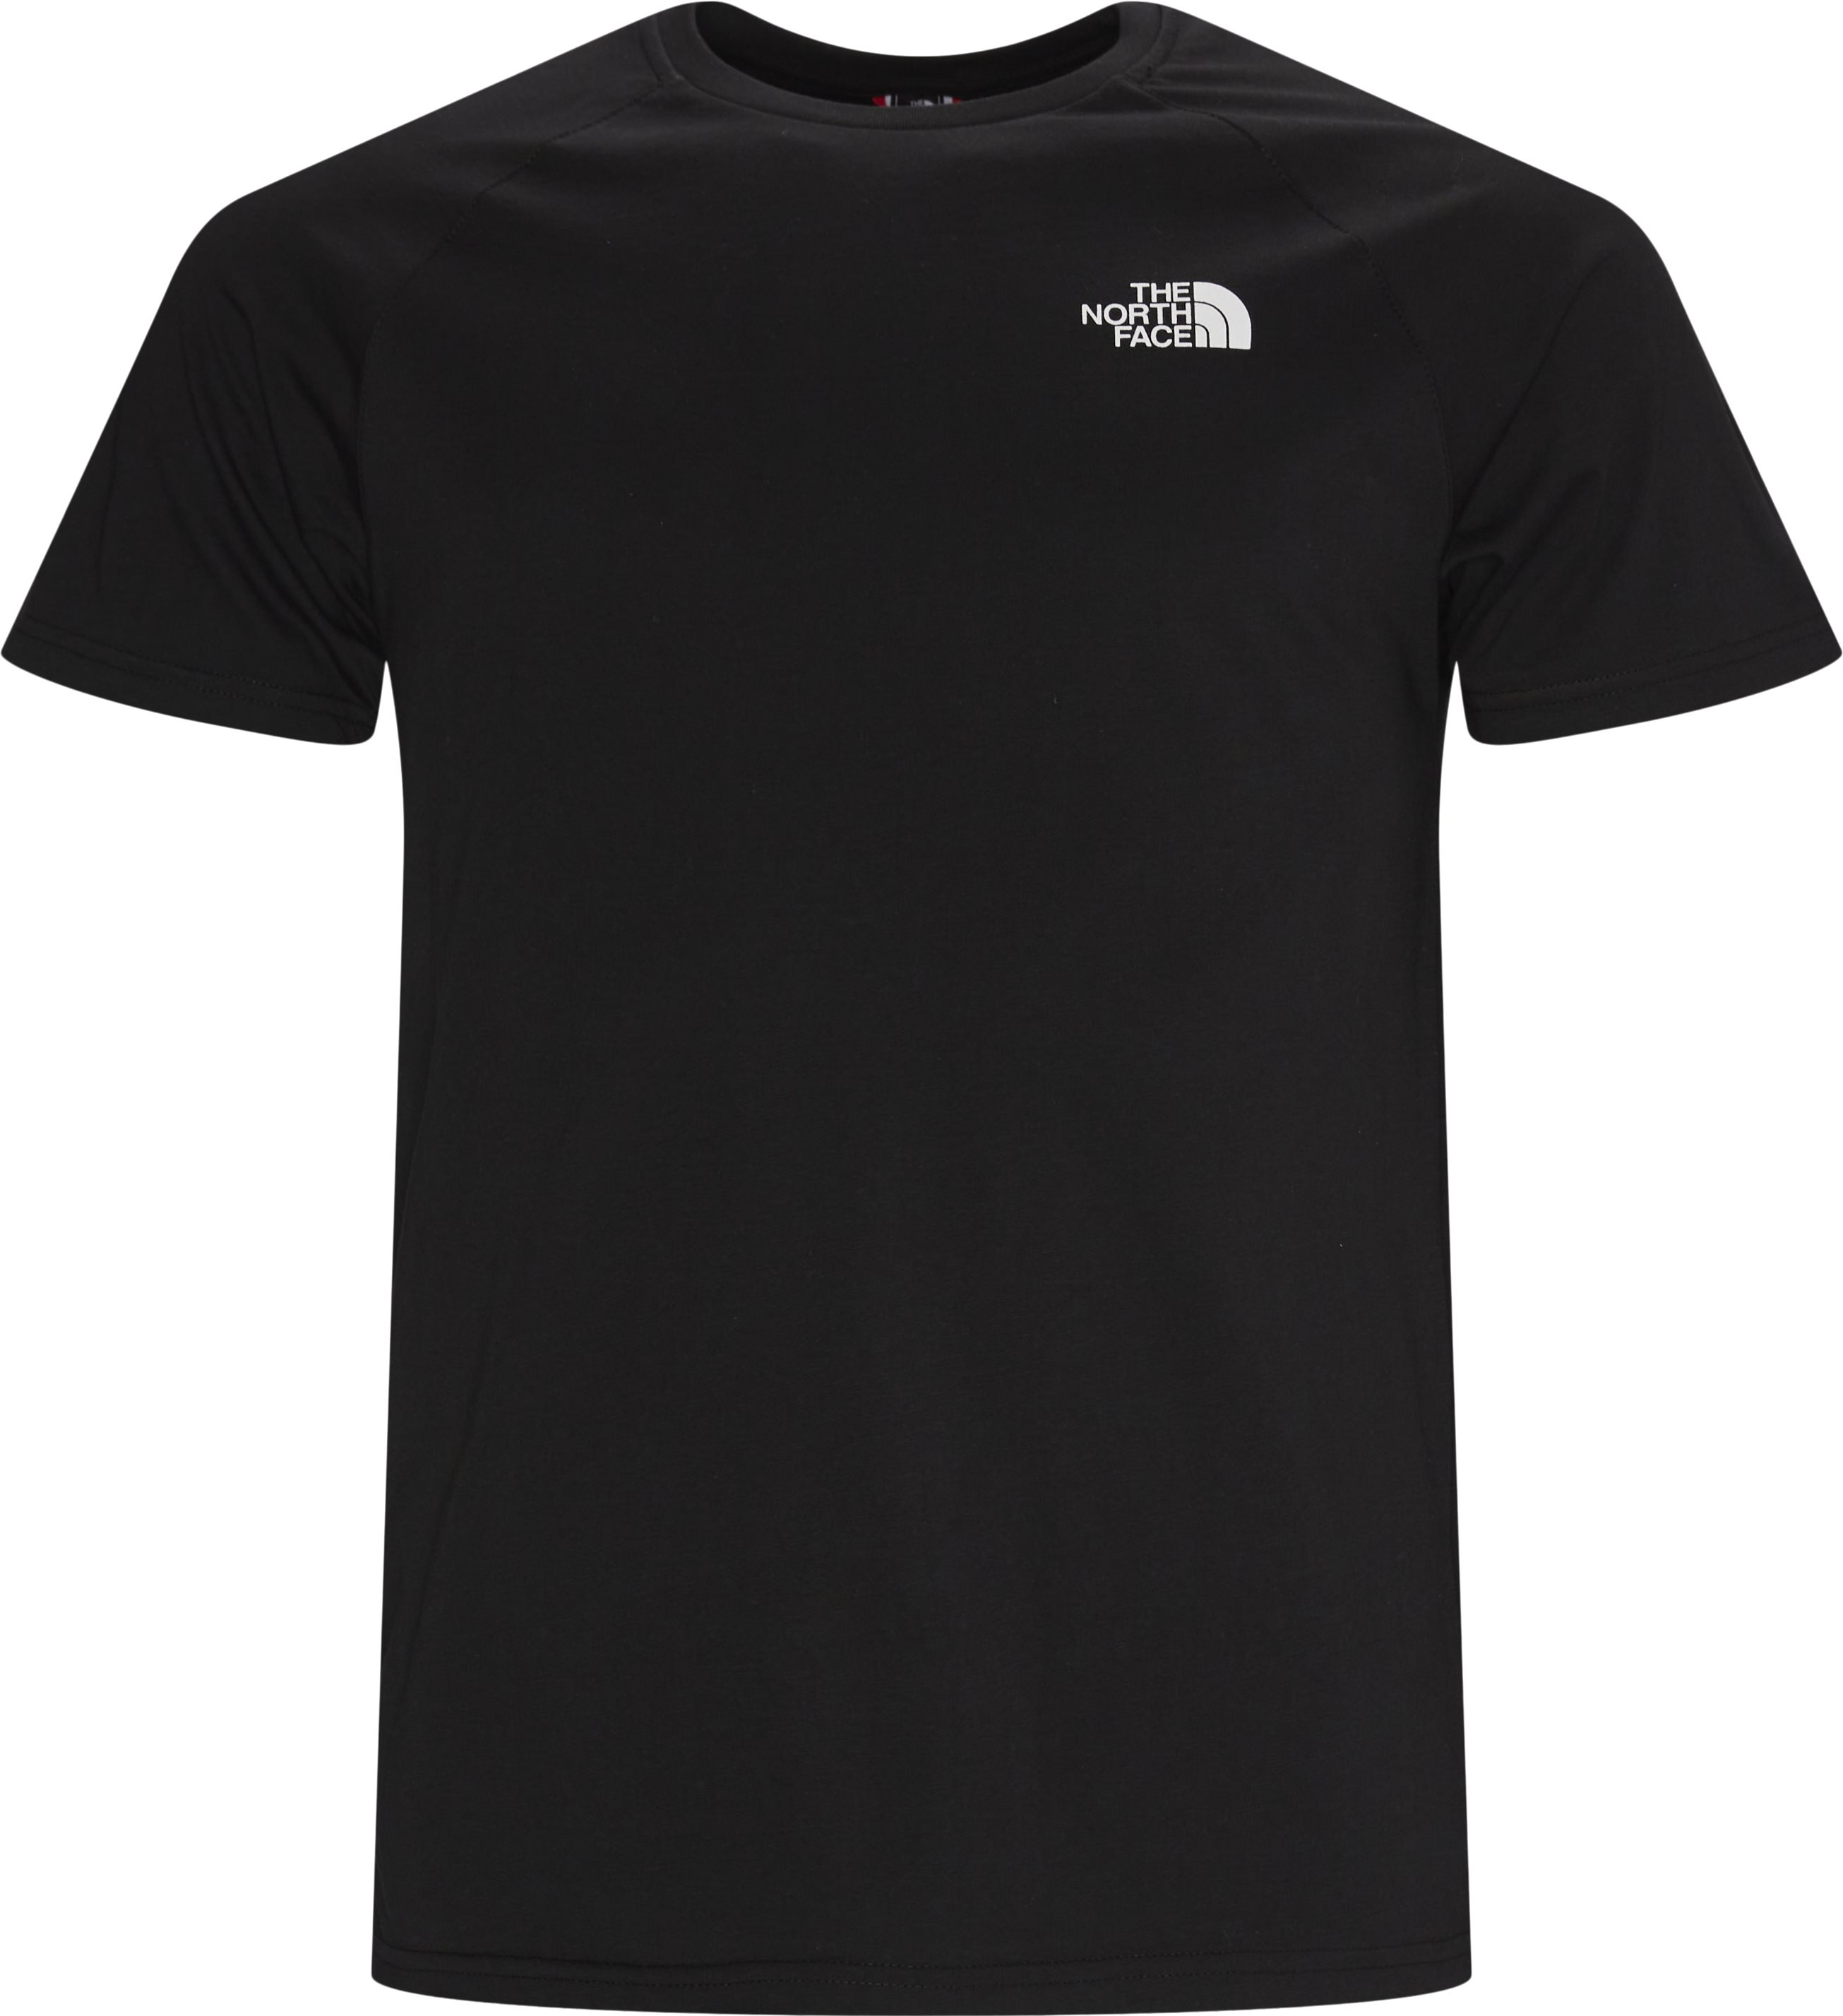 SS North Faces T-shirt - T-shirts - Regular fit - Sort